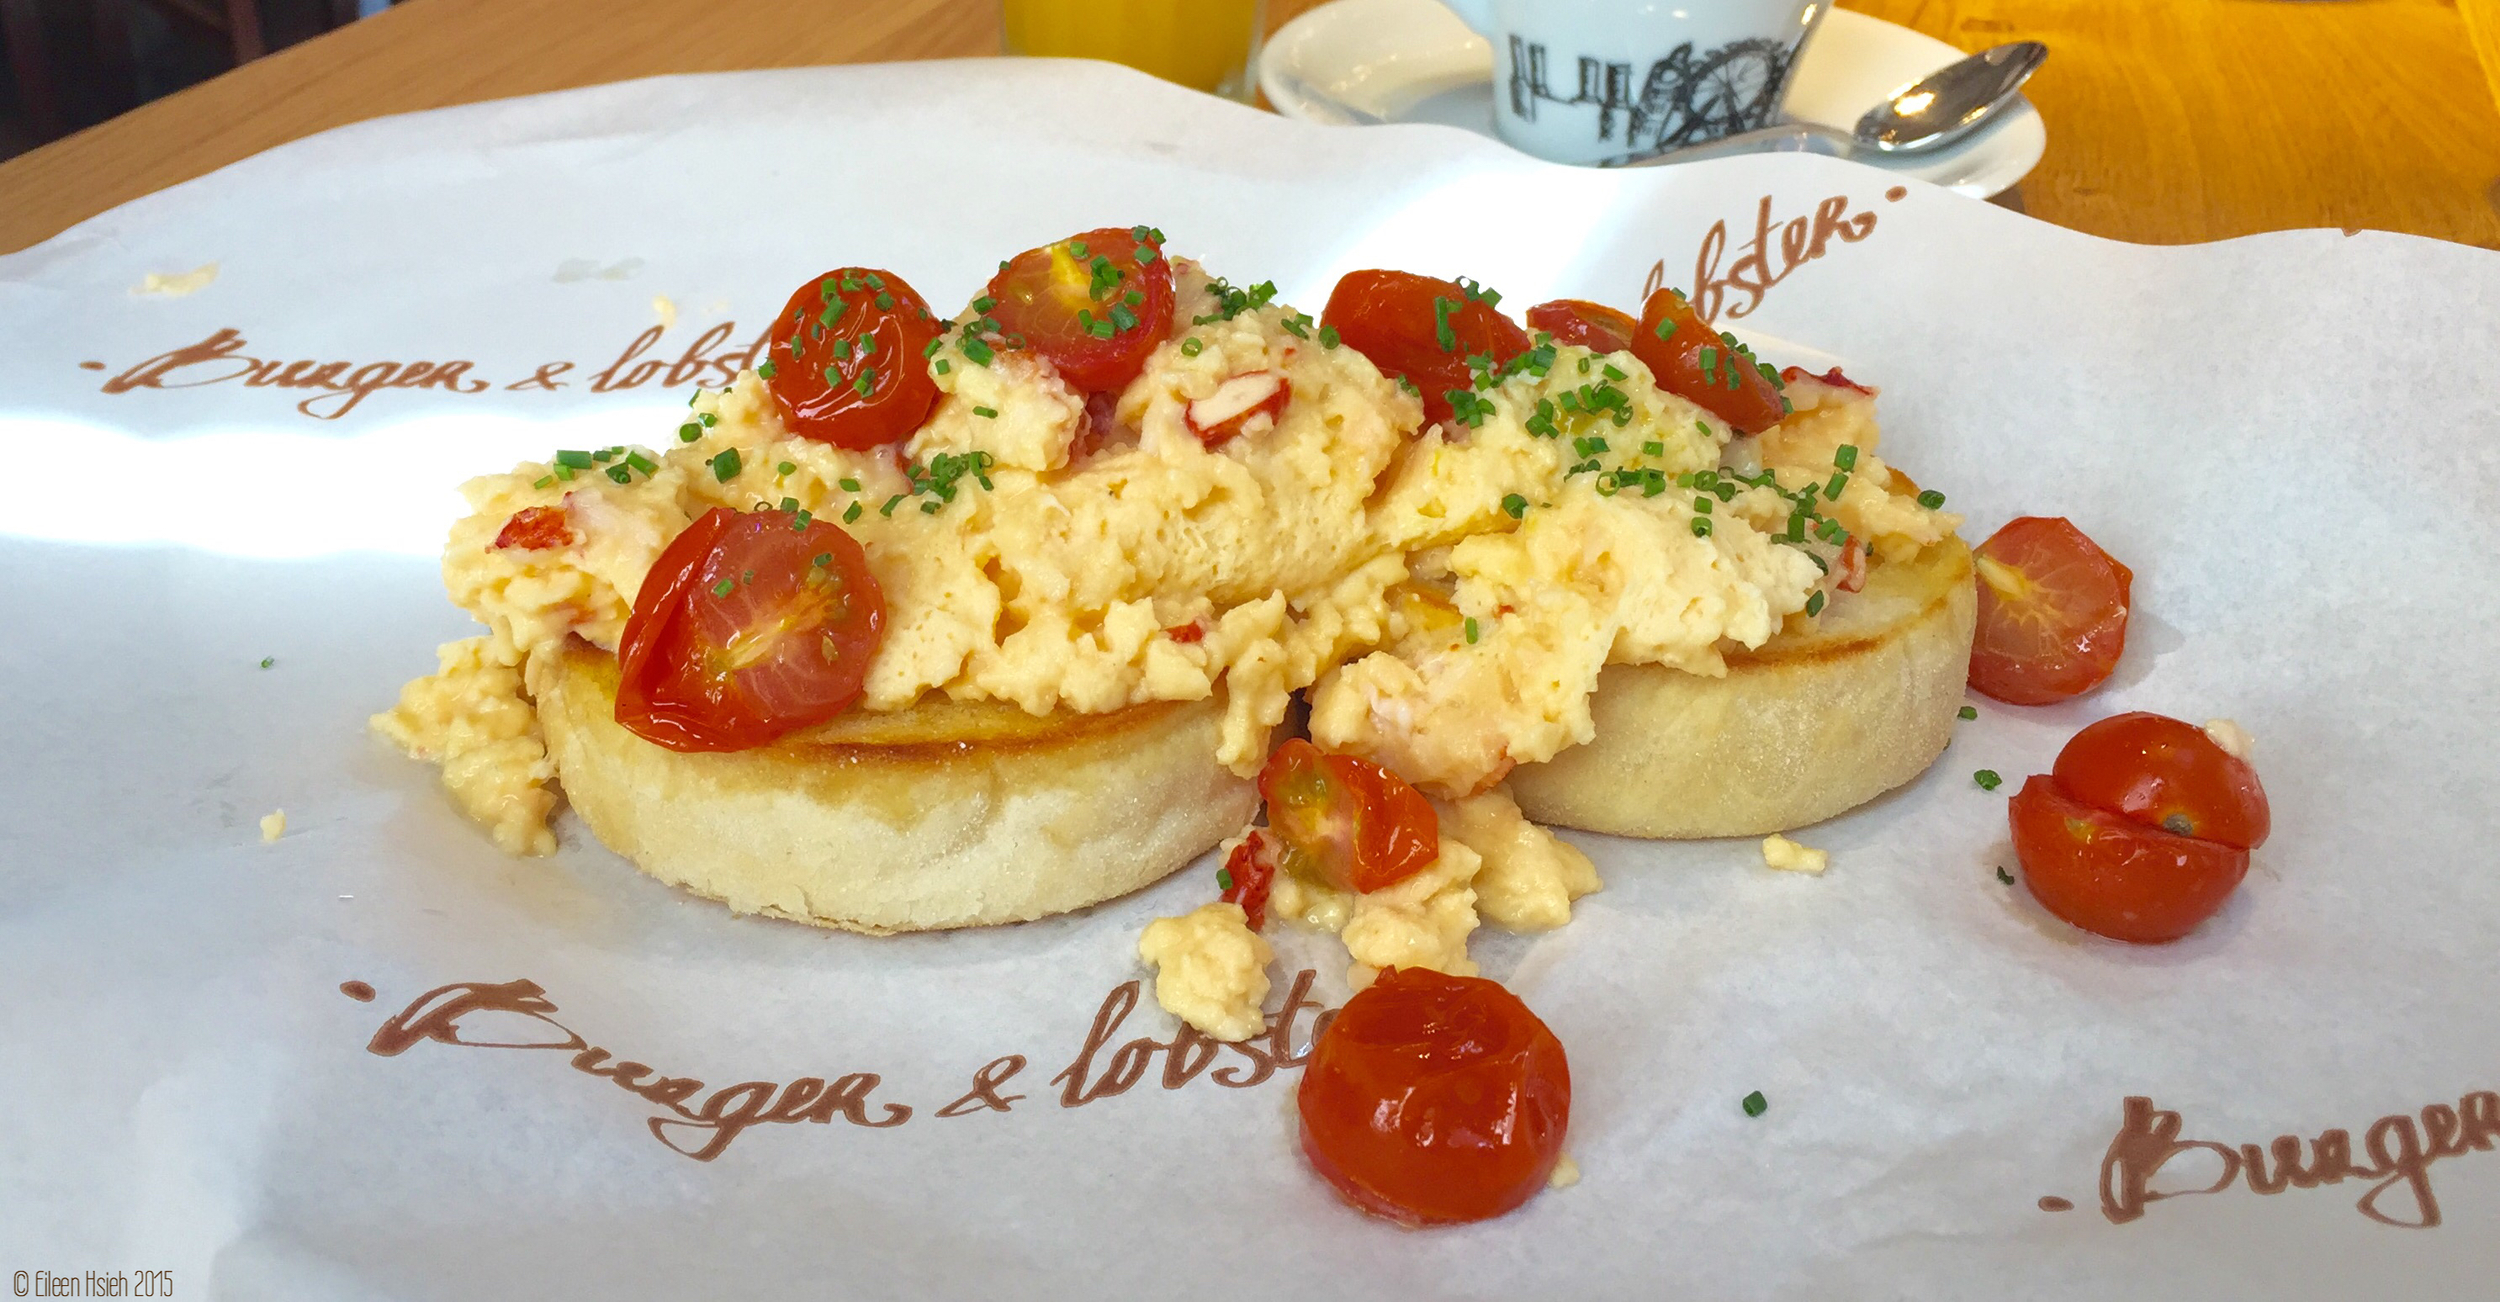 Scrambled eggs with lobster meat on English muffin, one of the three items on Burger & Lobster's new breakfast menu. 「漢堡 & 龍蝦」的新早餐:龍蝦炒蛋配英式鬆餅。 © Eileen Hsieh 2015